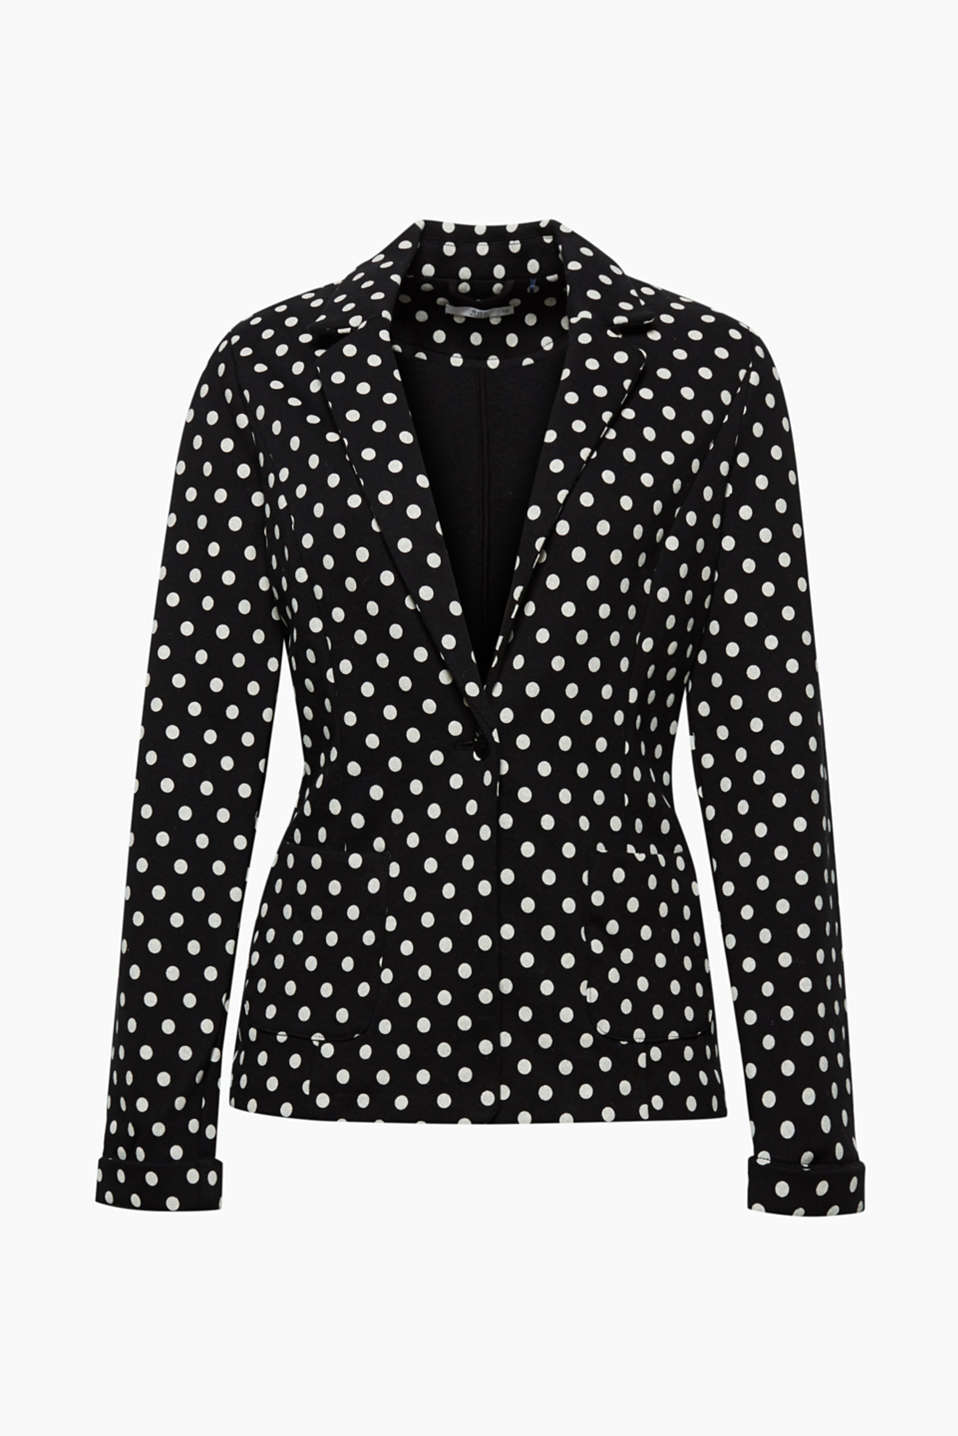 A clear victor! This soft sweatshirt fabric blazer will become a favourite companion with its fresh all-over polka dot style.